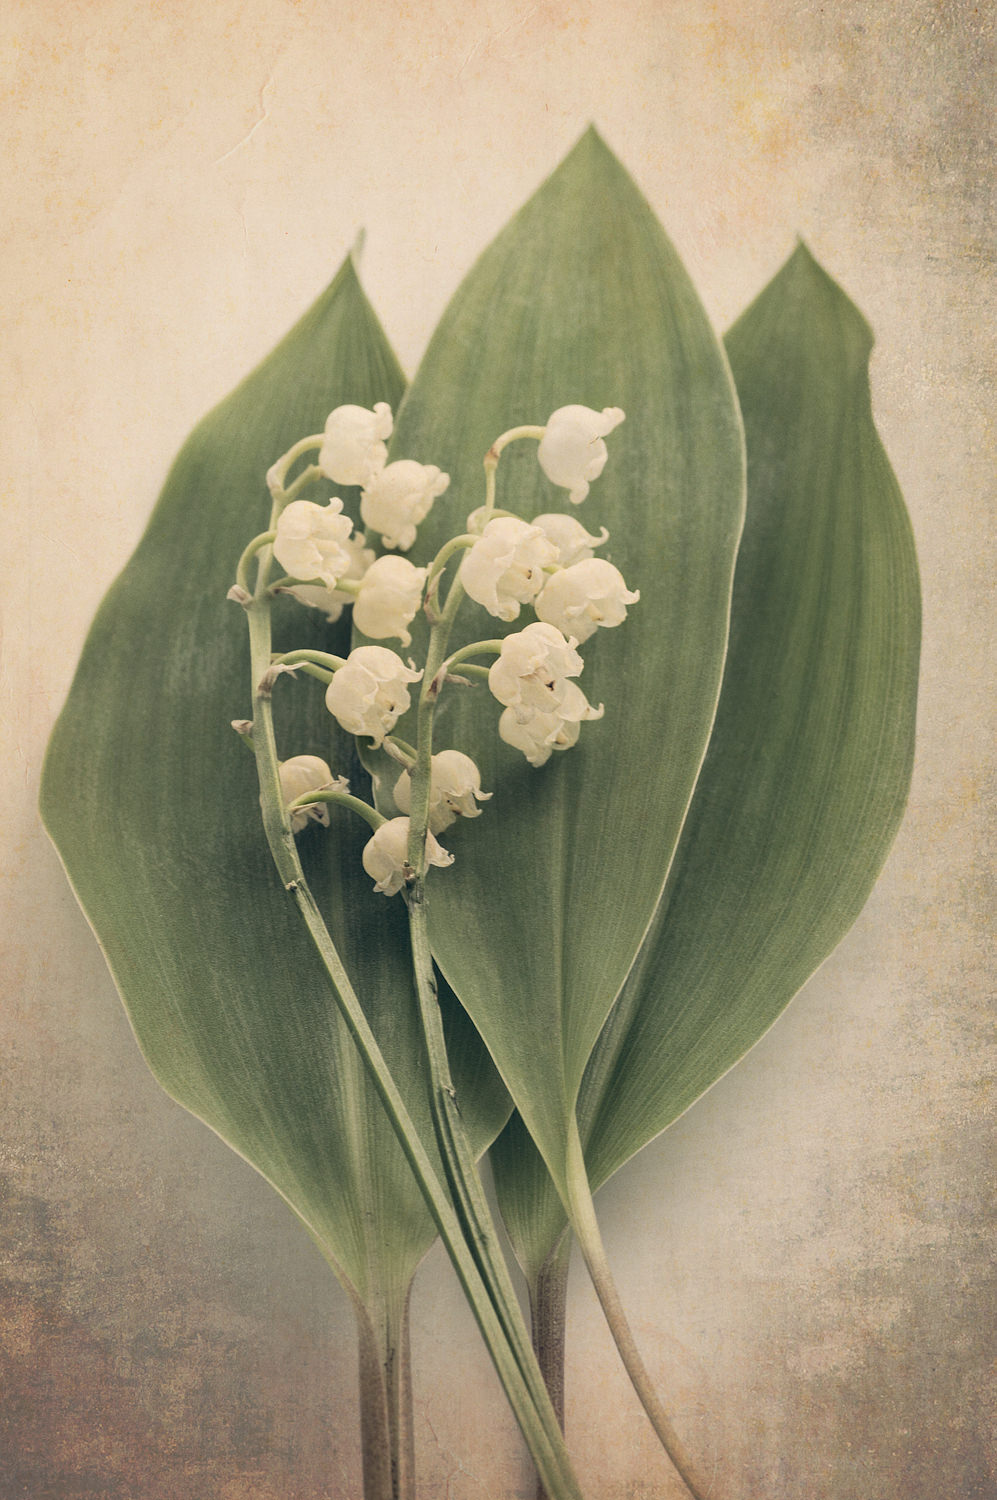 Scents of Spring Series - Lily of the Valley i